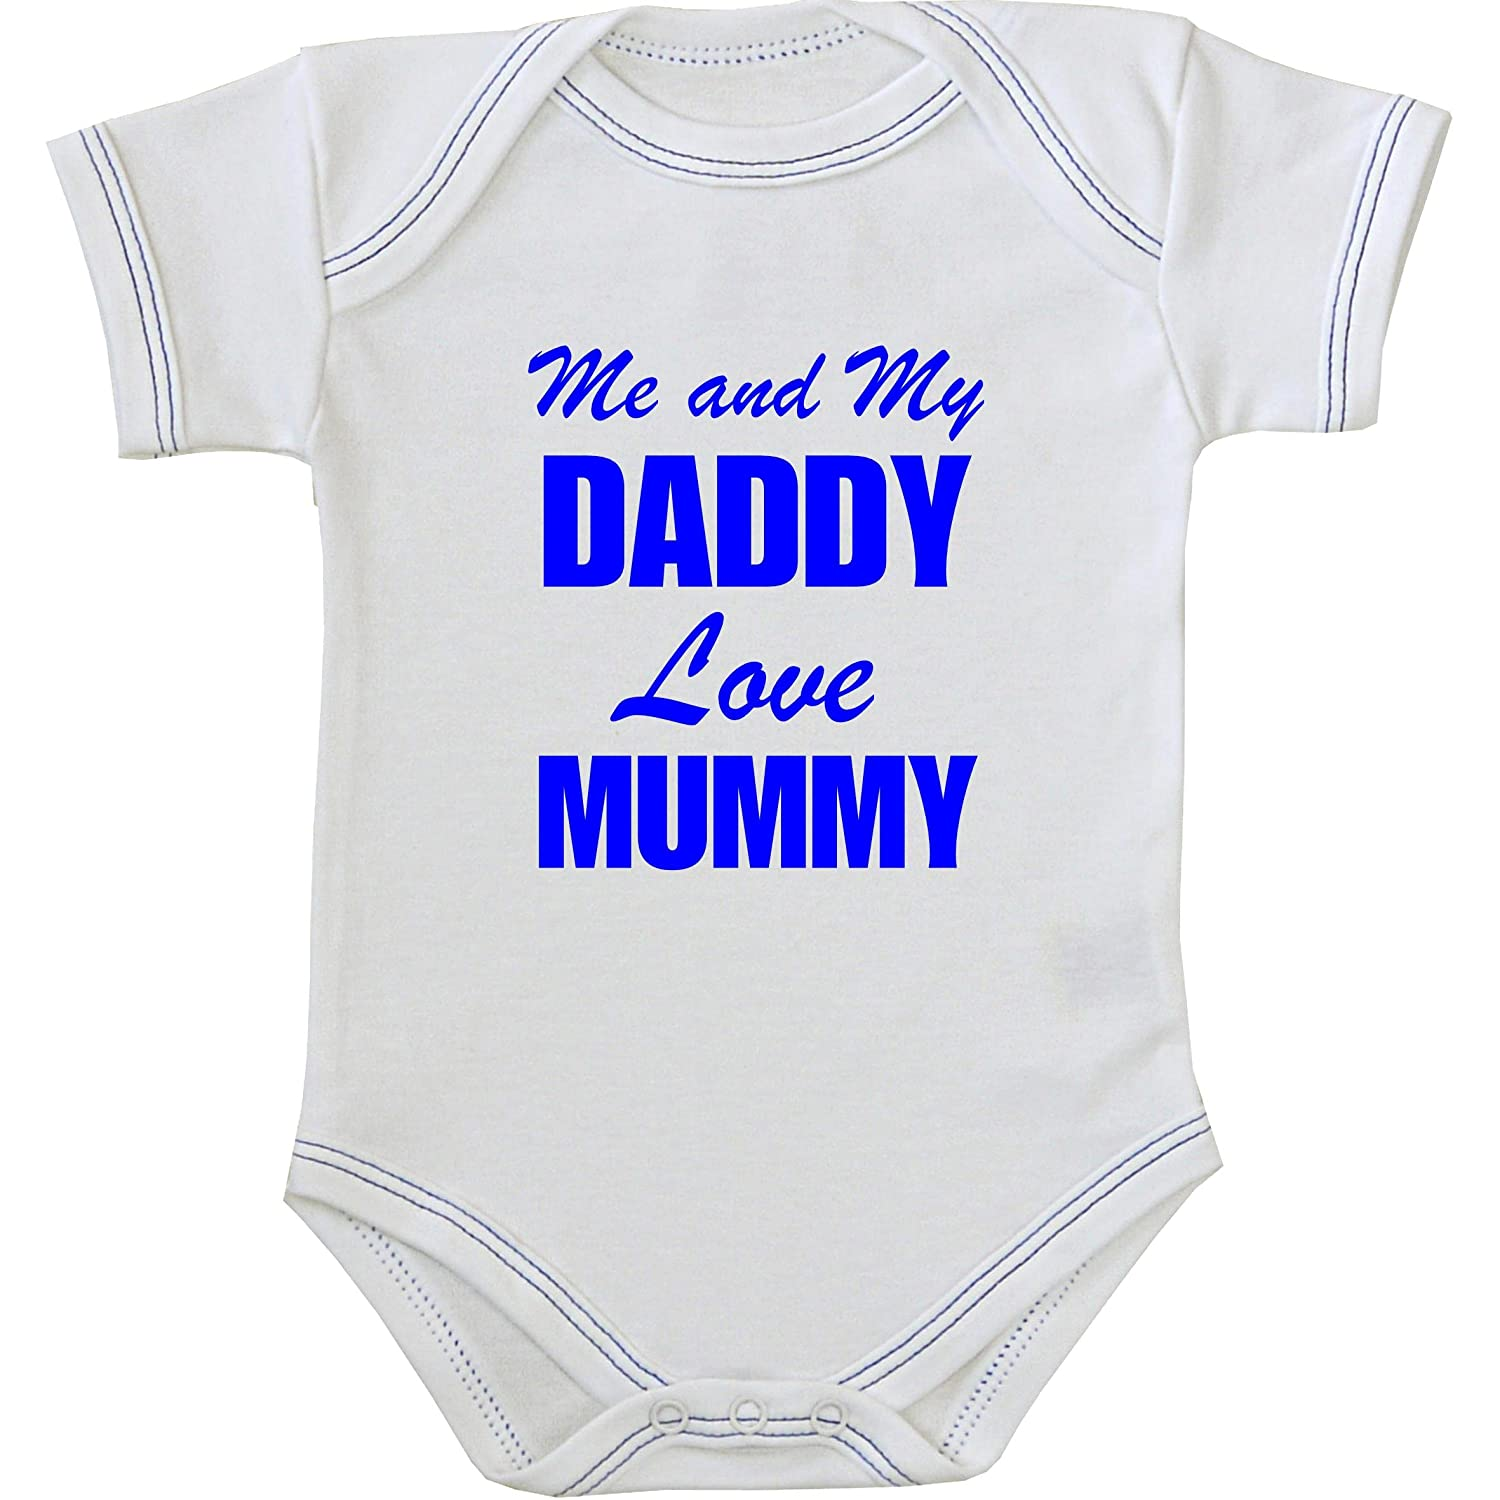 1 'One' Me and my Dad Love Mummy Baby Bodysuit Vest Newborn -12 months in a choice of 9 Colours ROYAL BLUE 0-3 Babyprem MM031DD